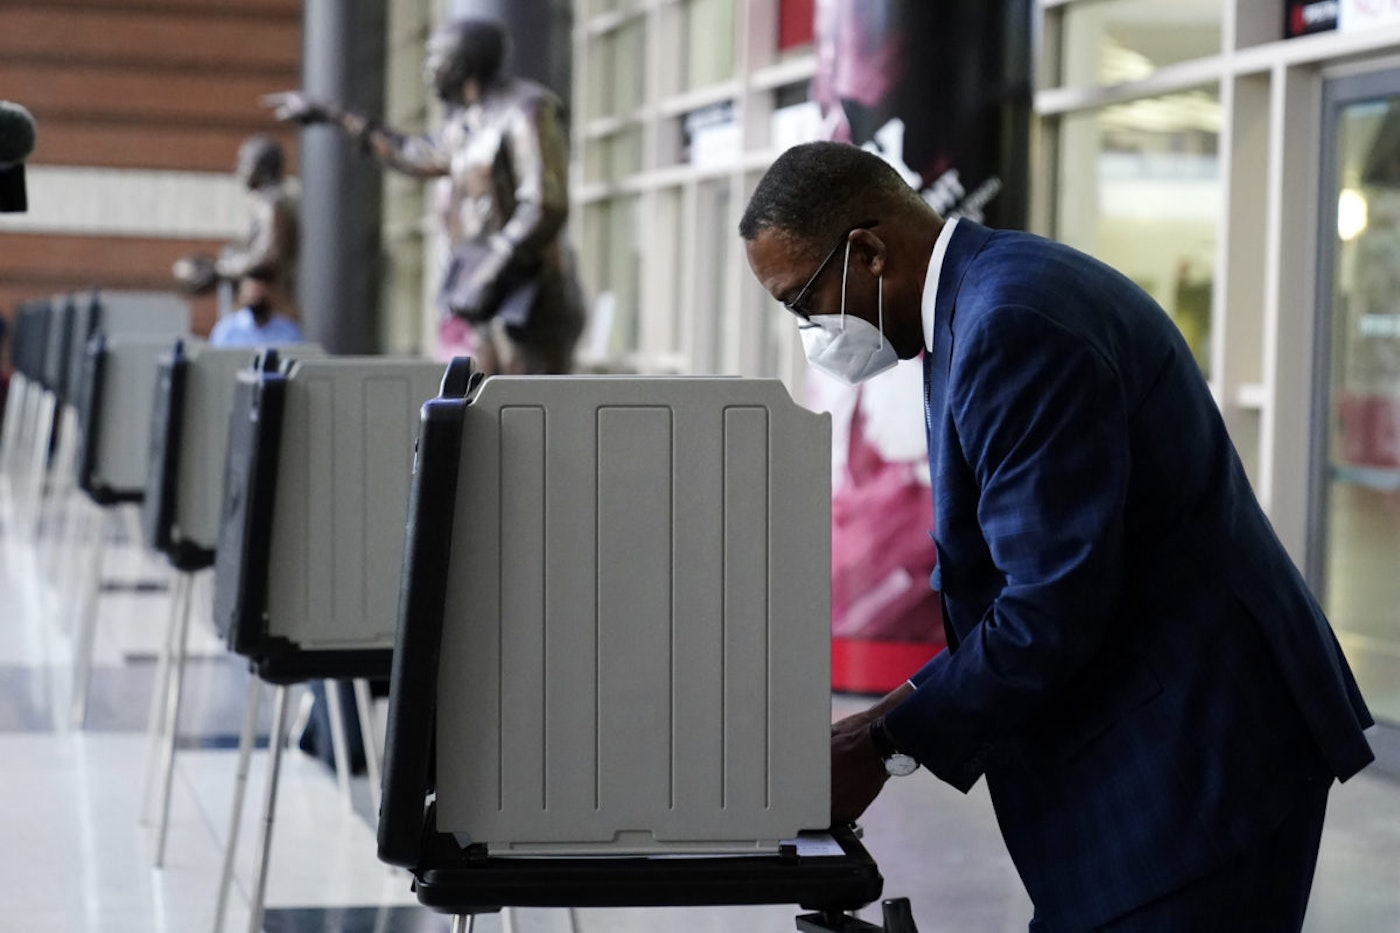 Philadelphia City Council President Darrell L. Clarke fills out his ballot at the opening of a satellite election office at Temple University's Liacouras Center, Tuesday, Sept. 29, 2020, in Philadelphia.   (AP Photo/Matt Slocum)